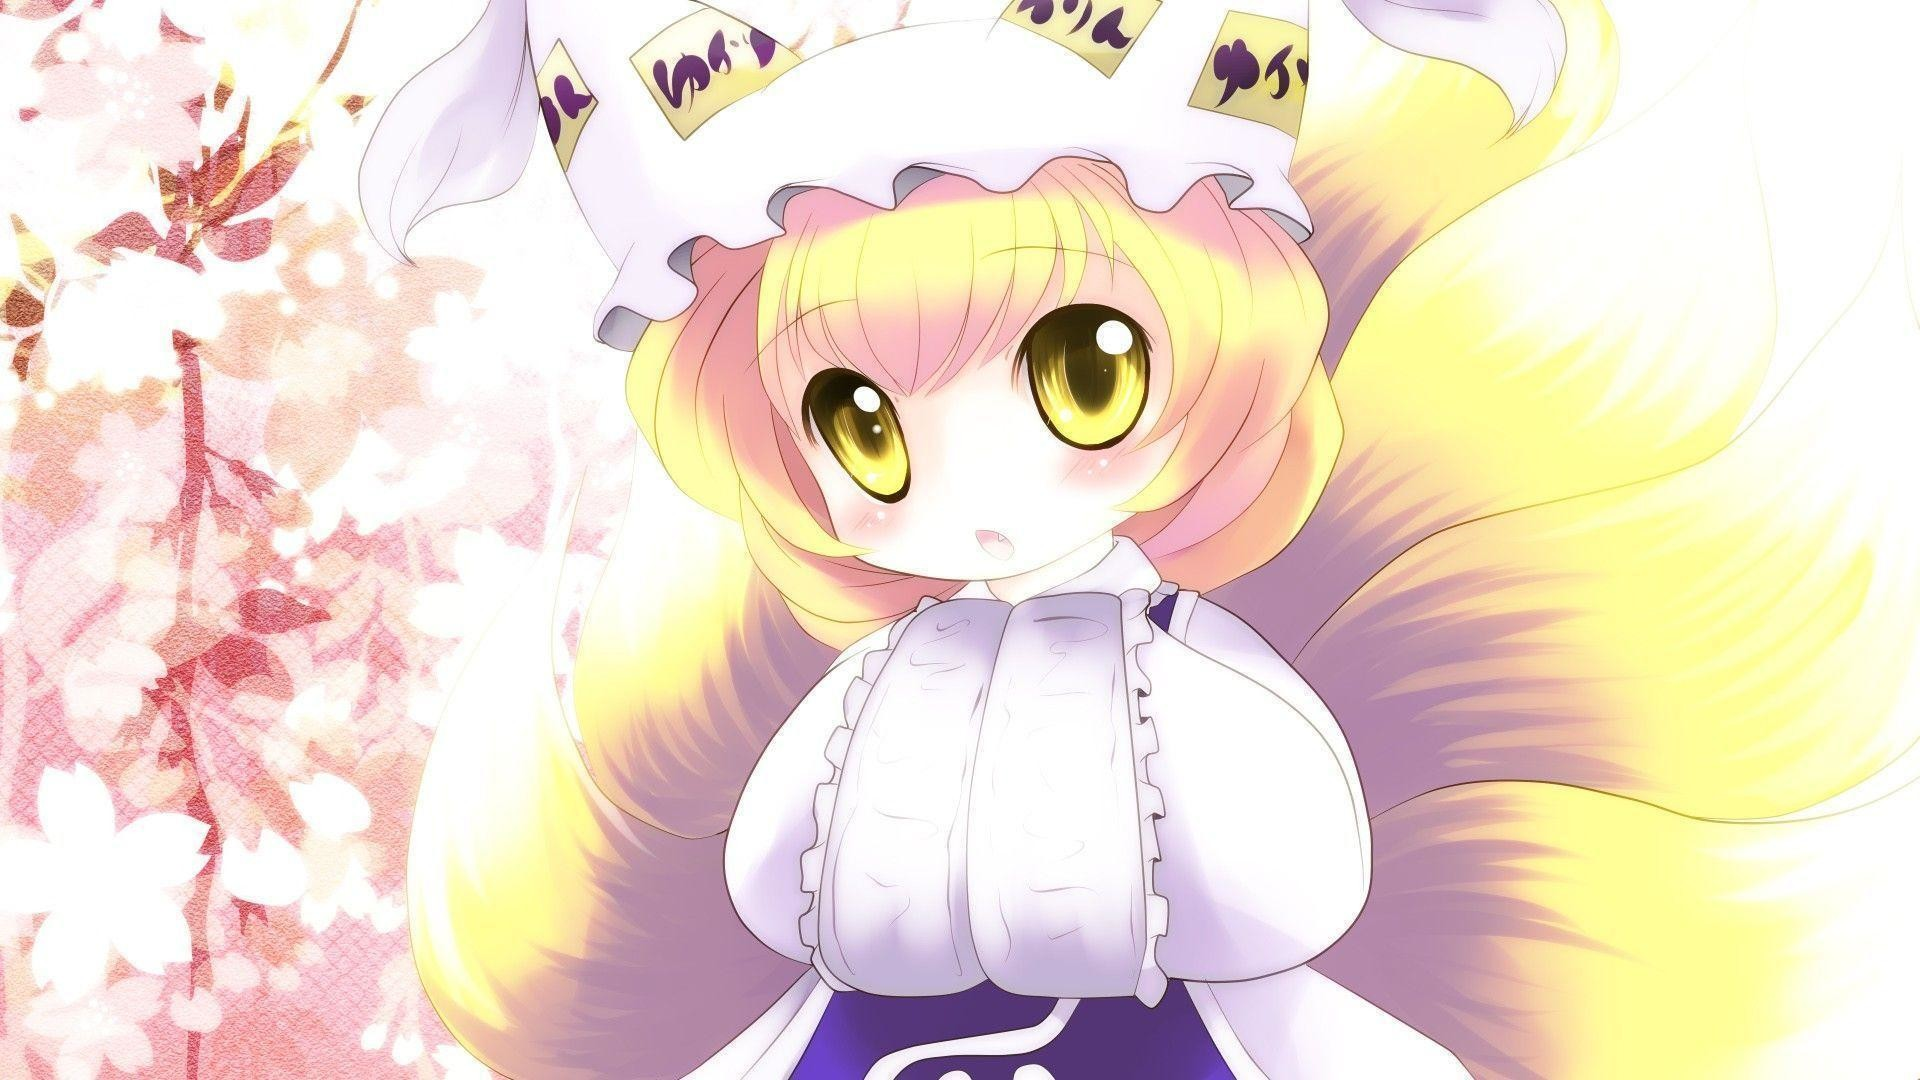 Cute Anime Girl Chibi Wallpaper Wide – ToObjects.